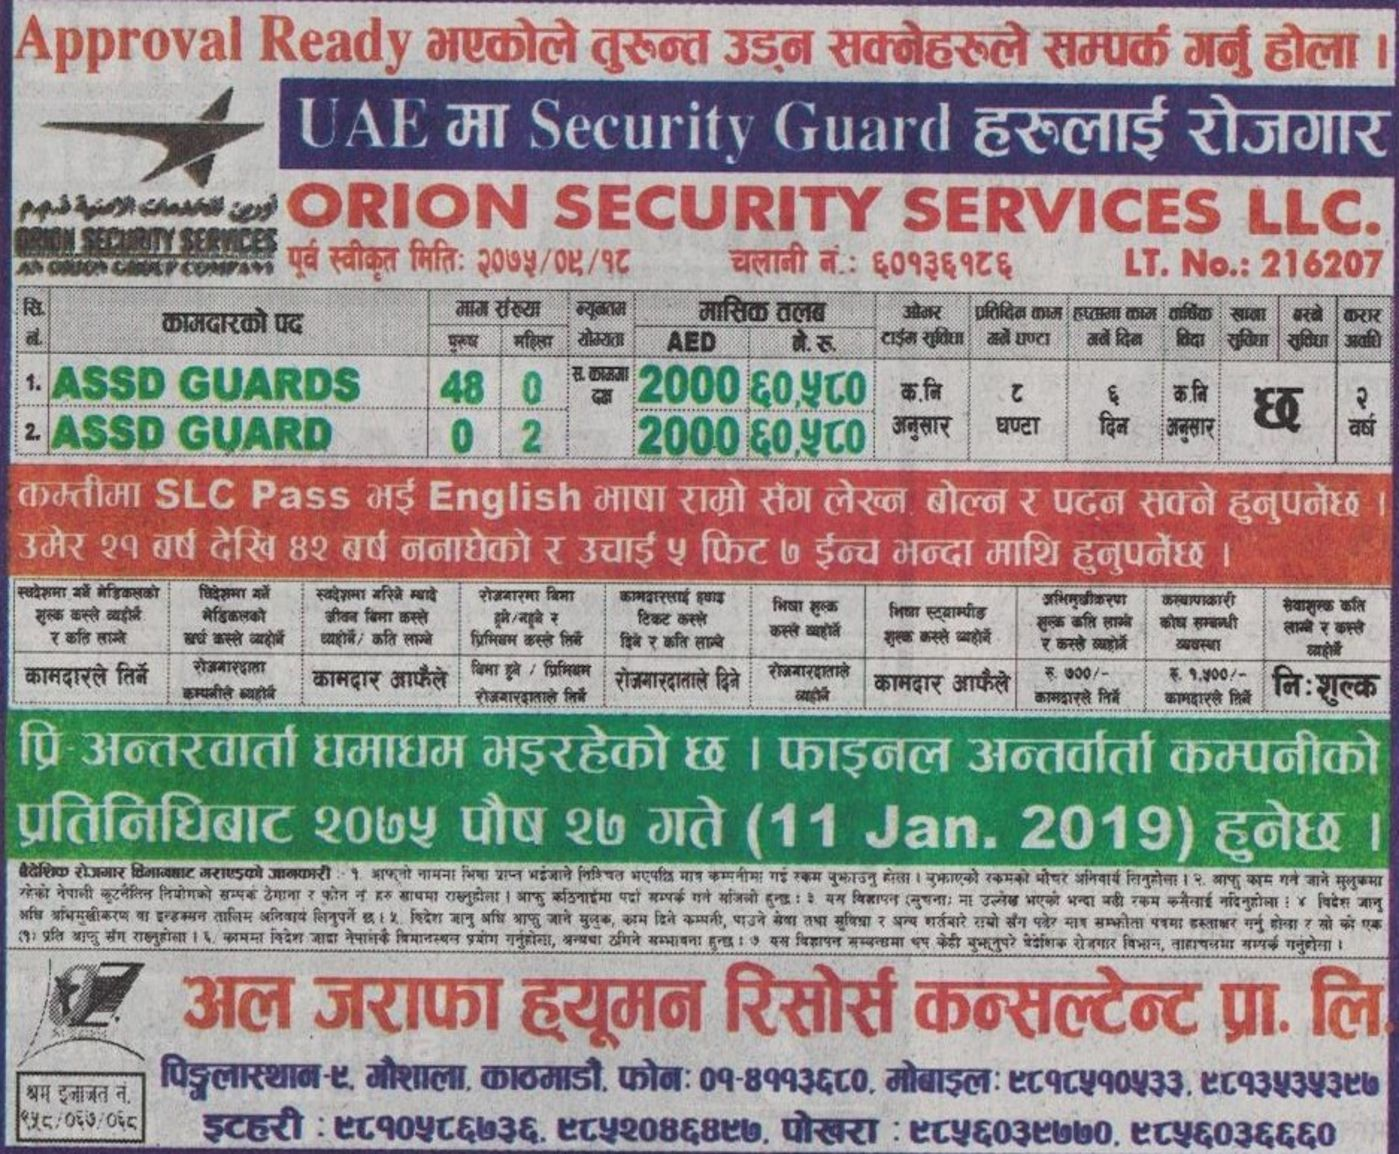 Jobs Nepal - Vacancy - Assd Guards (Male&Female) - Orion